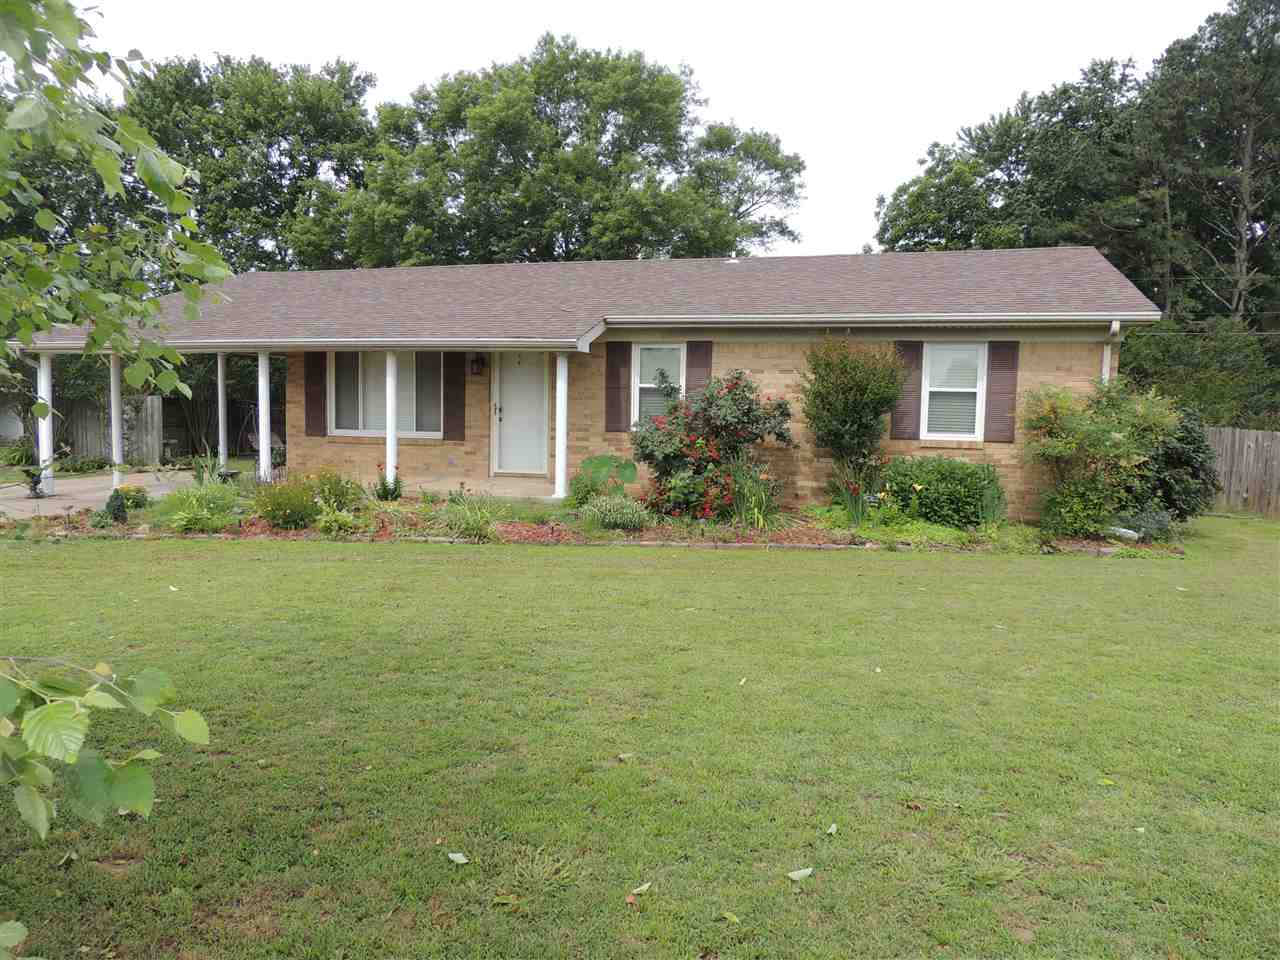 147 Powell Road,Dyersburg,Tennessee 38024,3 Bedrooms Bedrooms,2 BathroomsBathrooms,Residential,147 Powell Road,177945